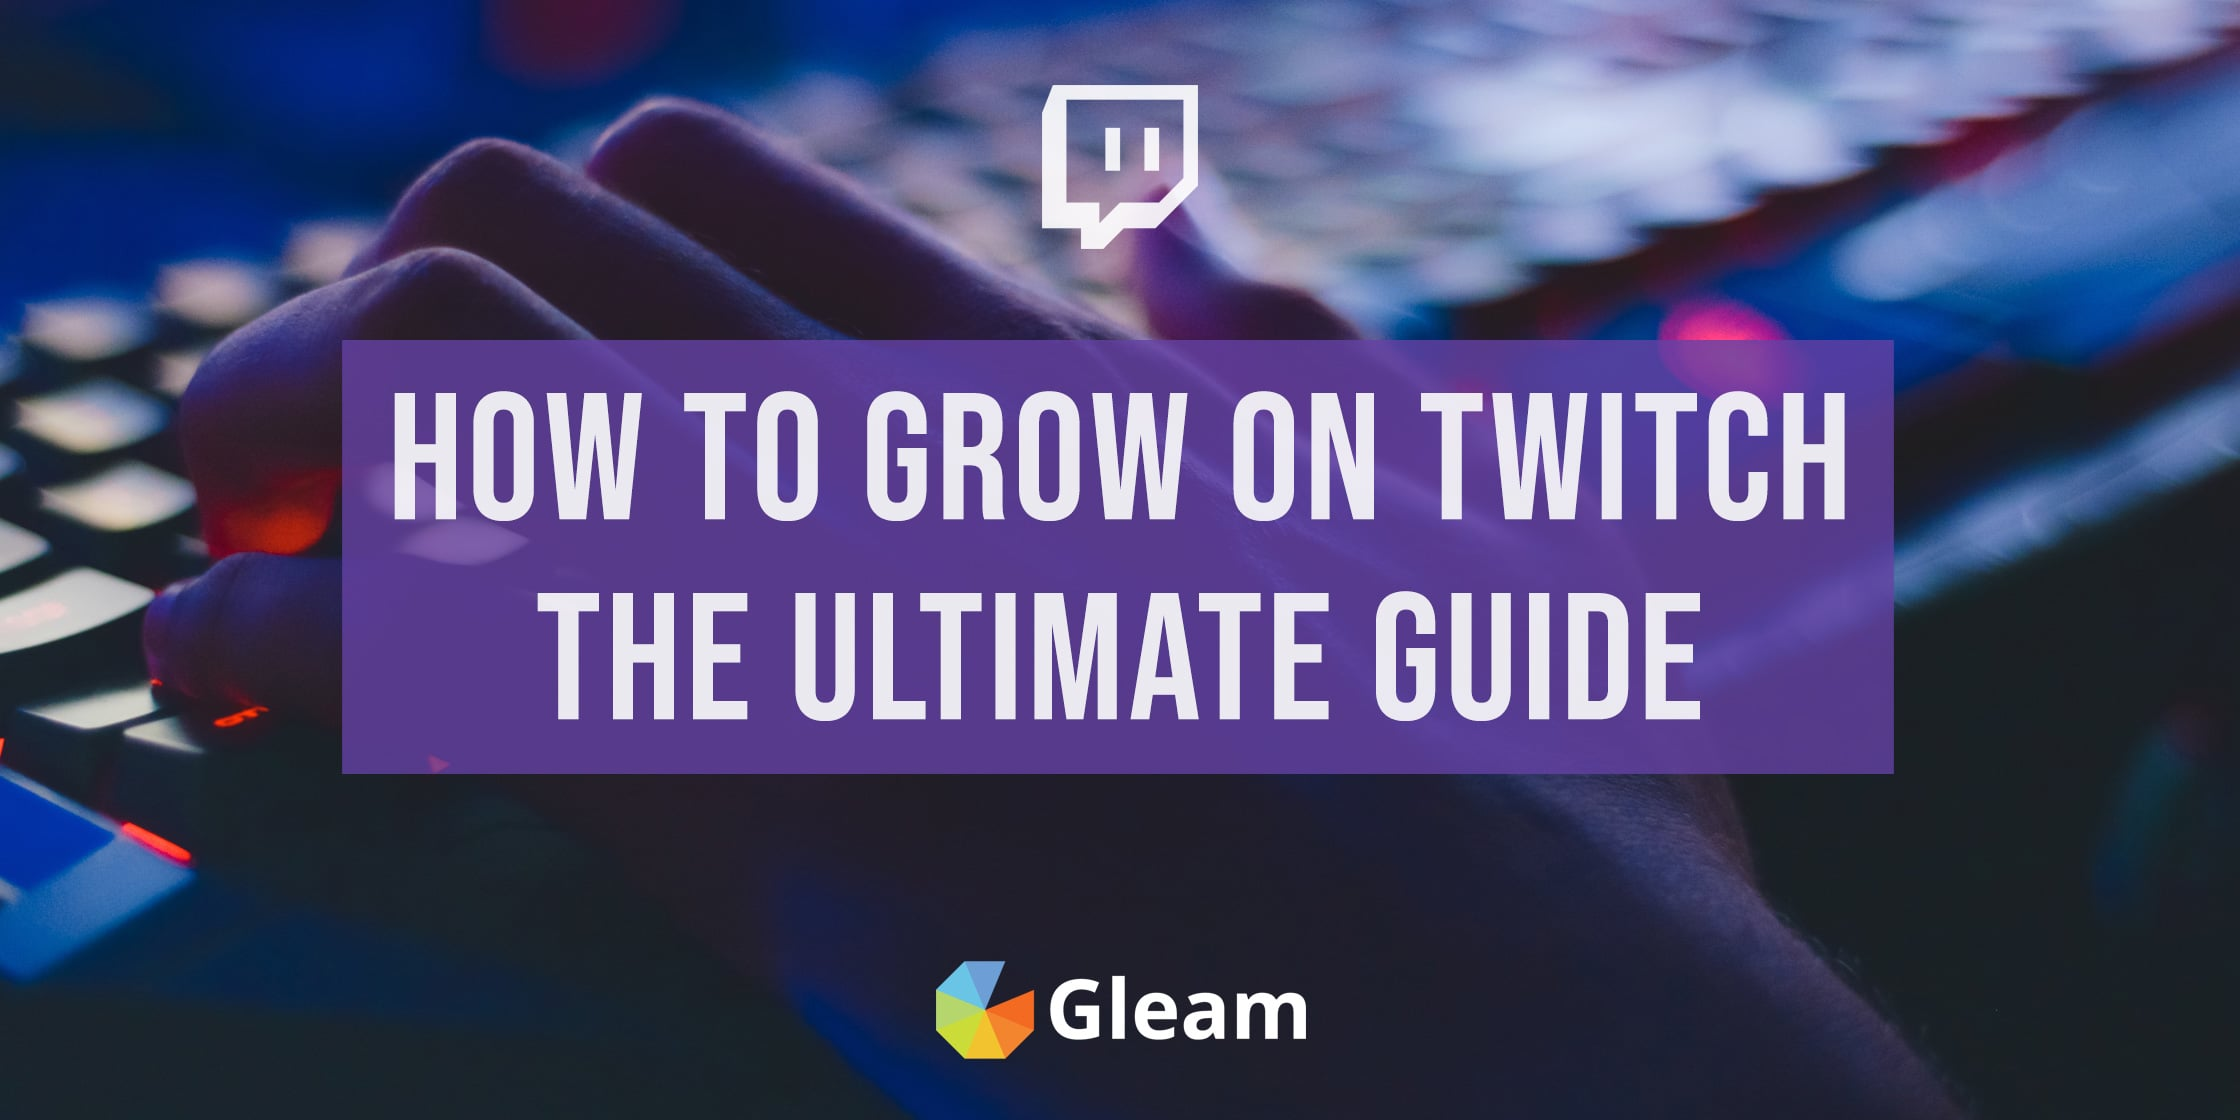 9 Ways to Grow Your Twitch Channel in 2020